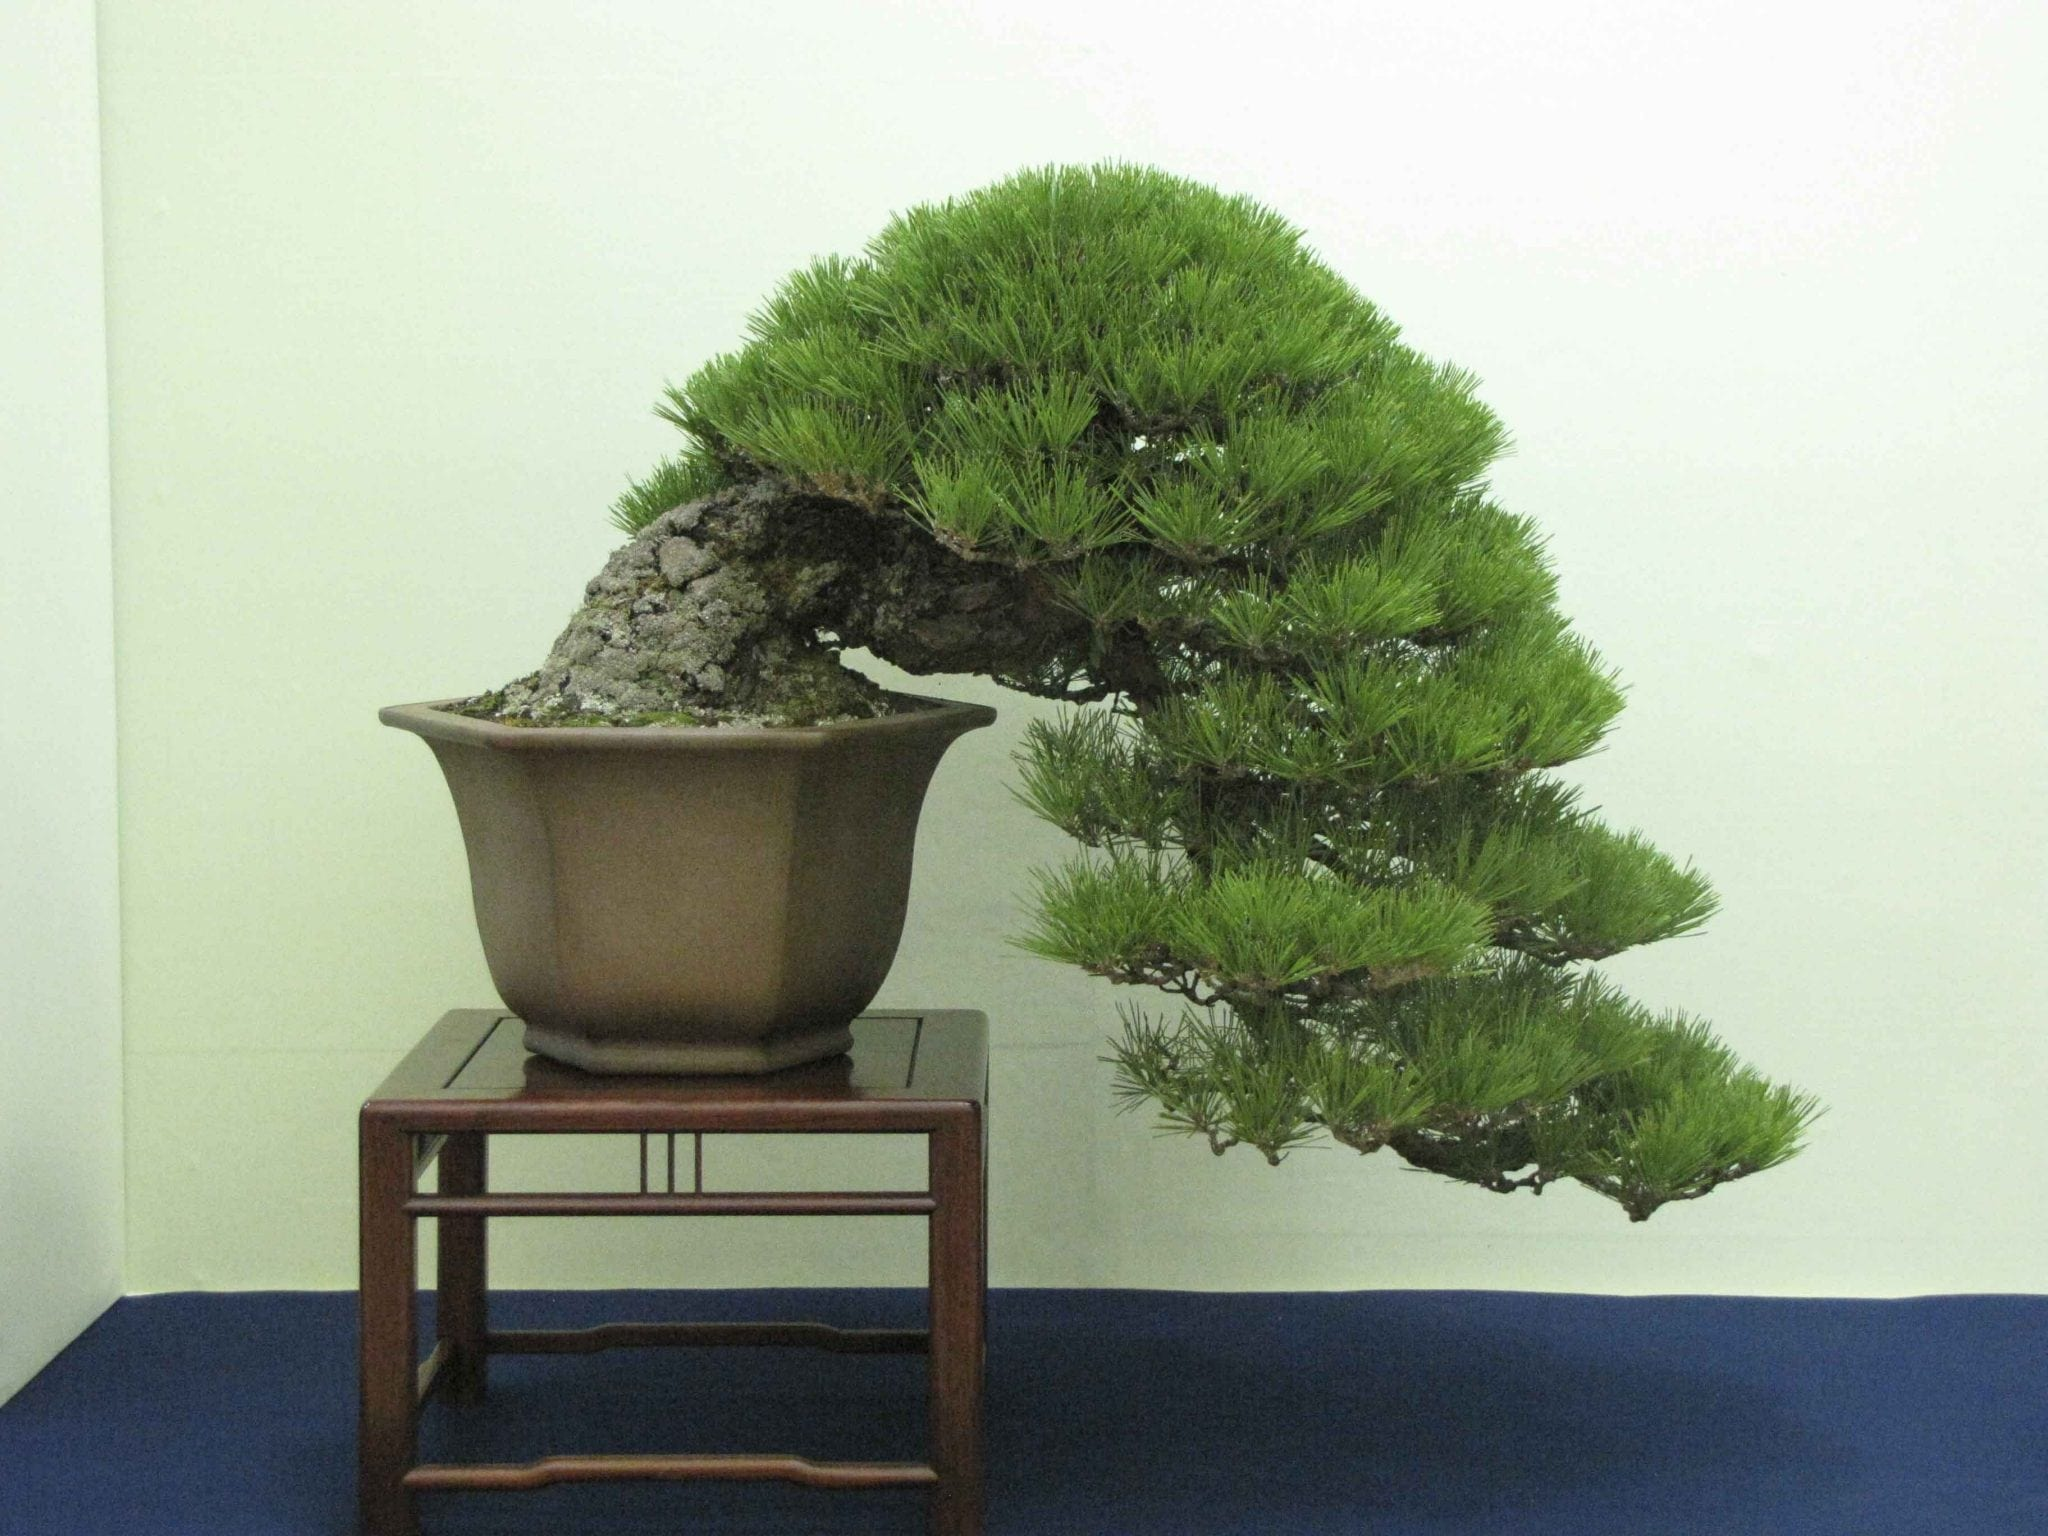 Japanese Black Pine Bonsai Tree